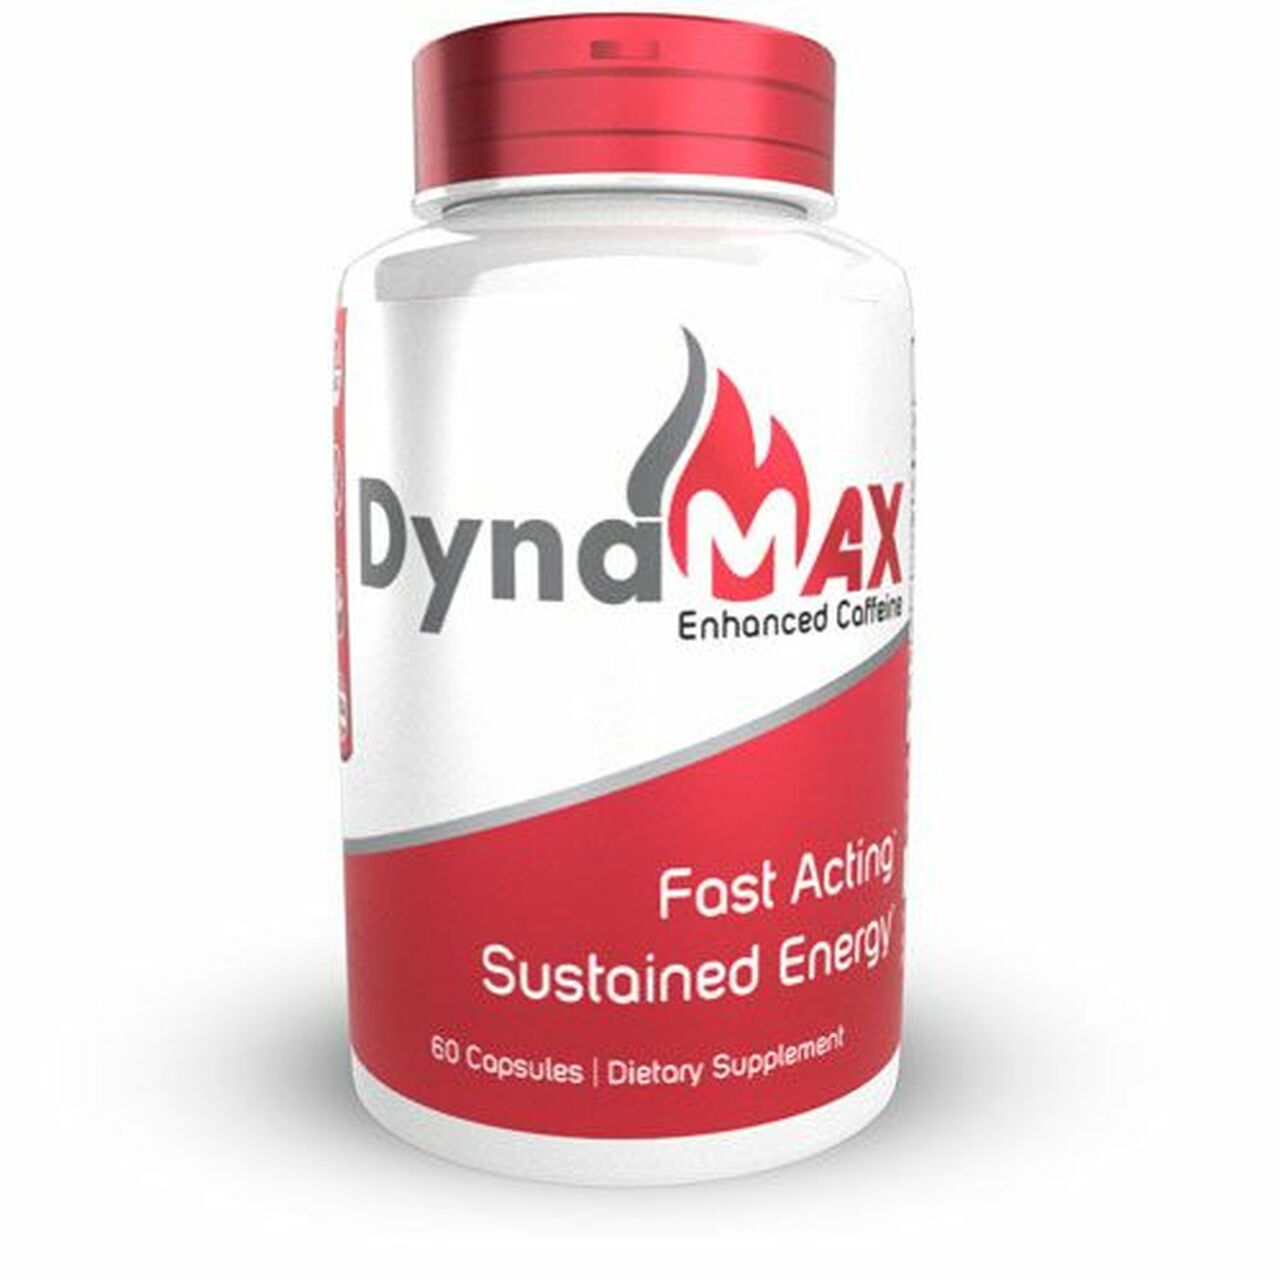 Buy DynaMAX Optimized Caffeine Capsules